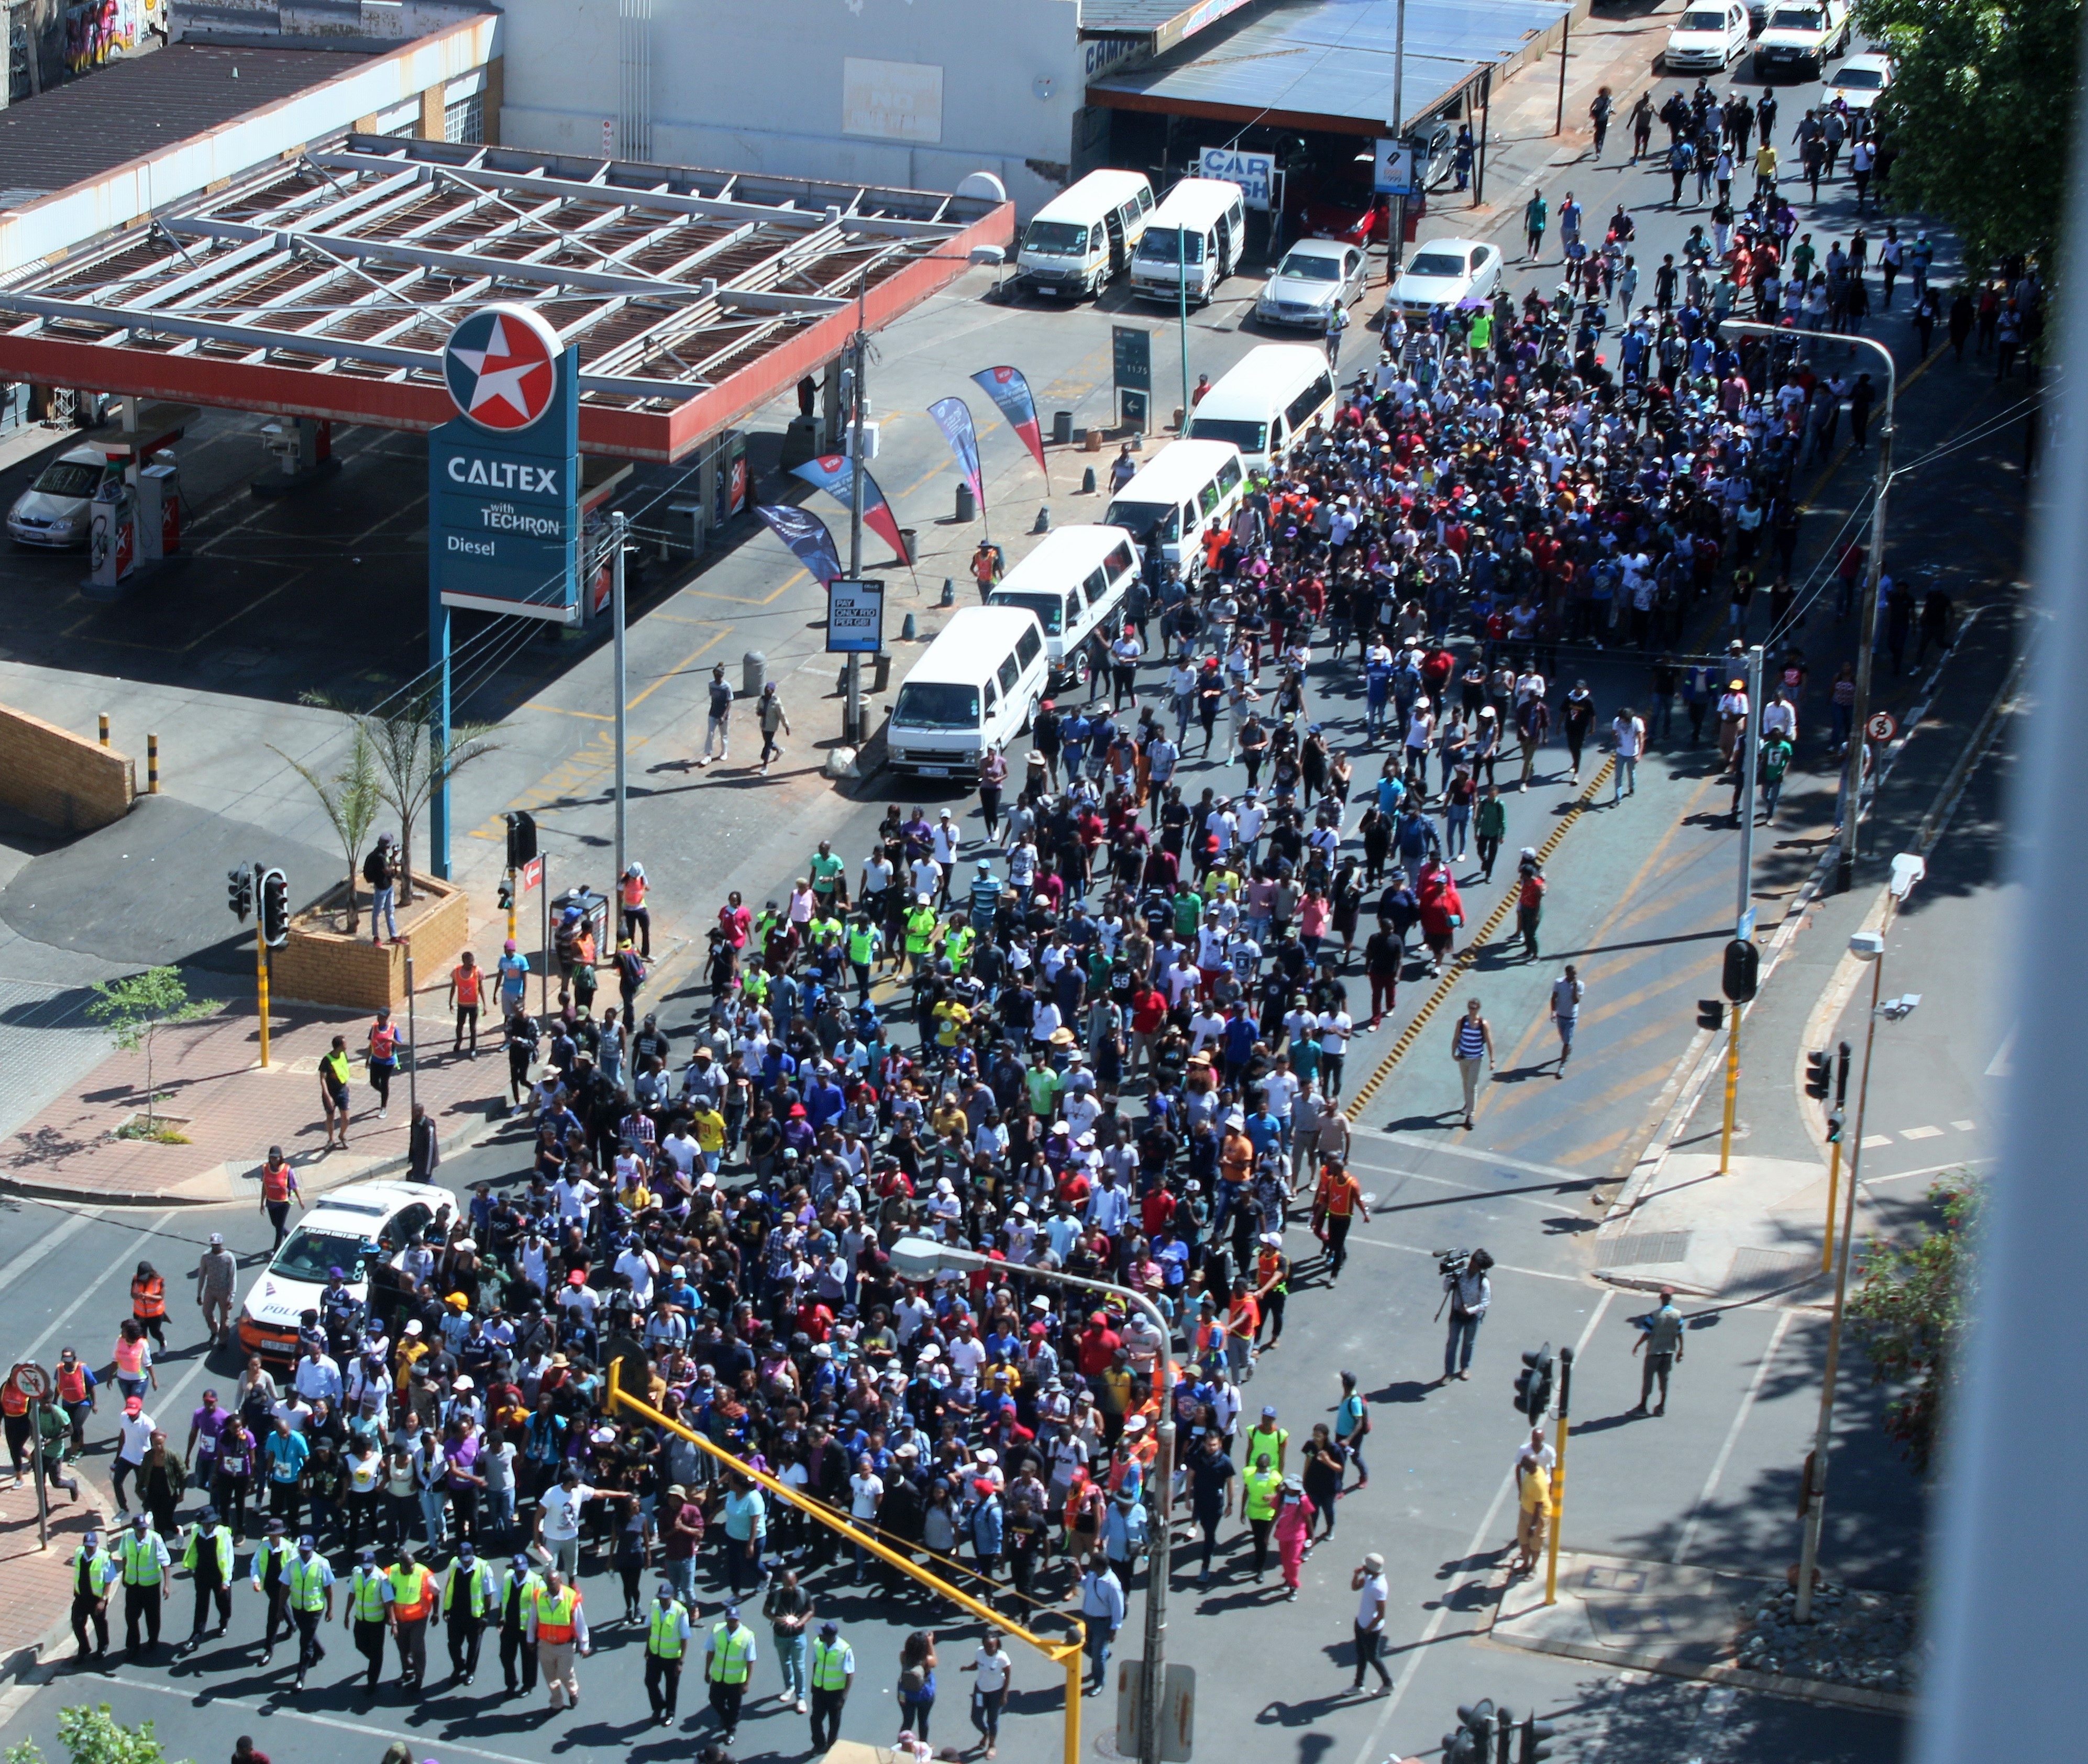 Chamber of Mines to consider student demands